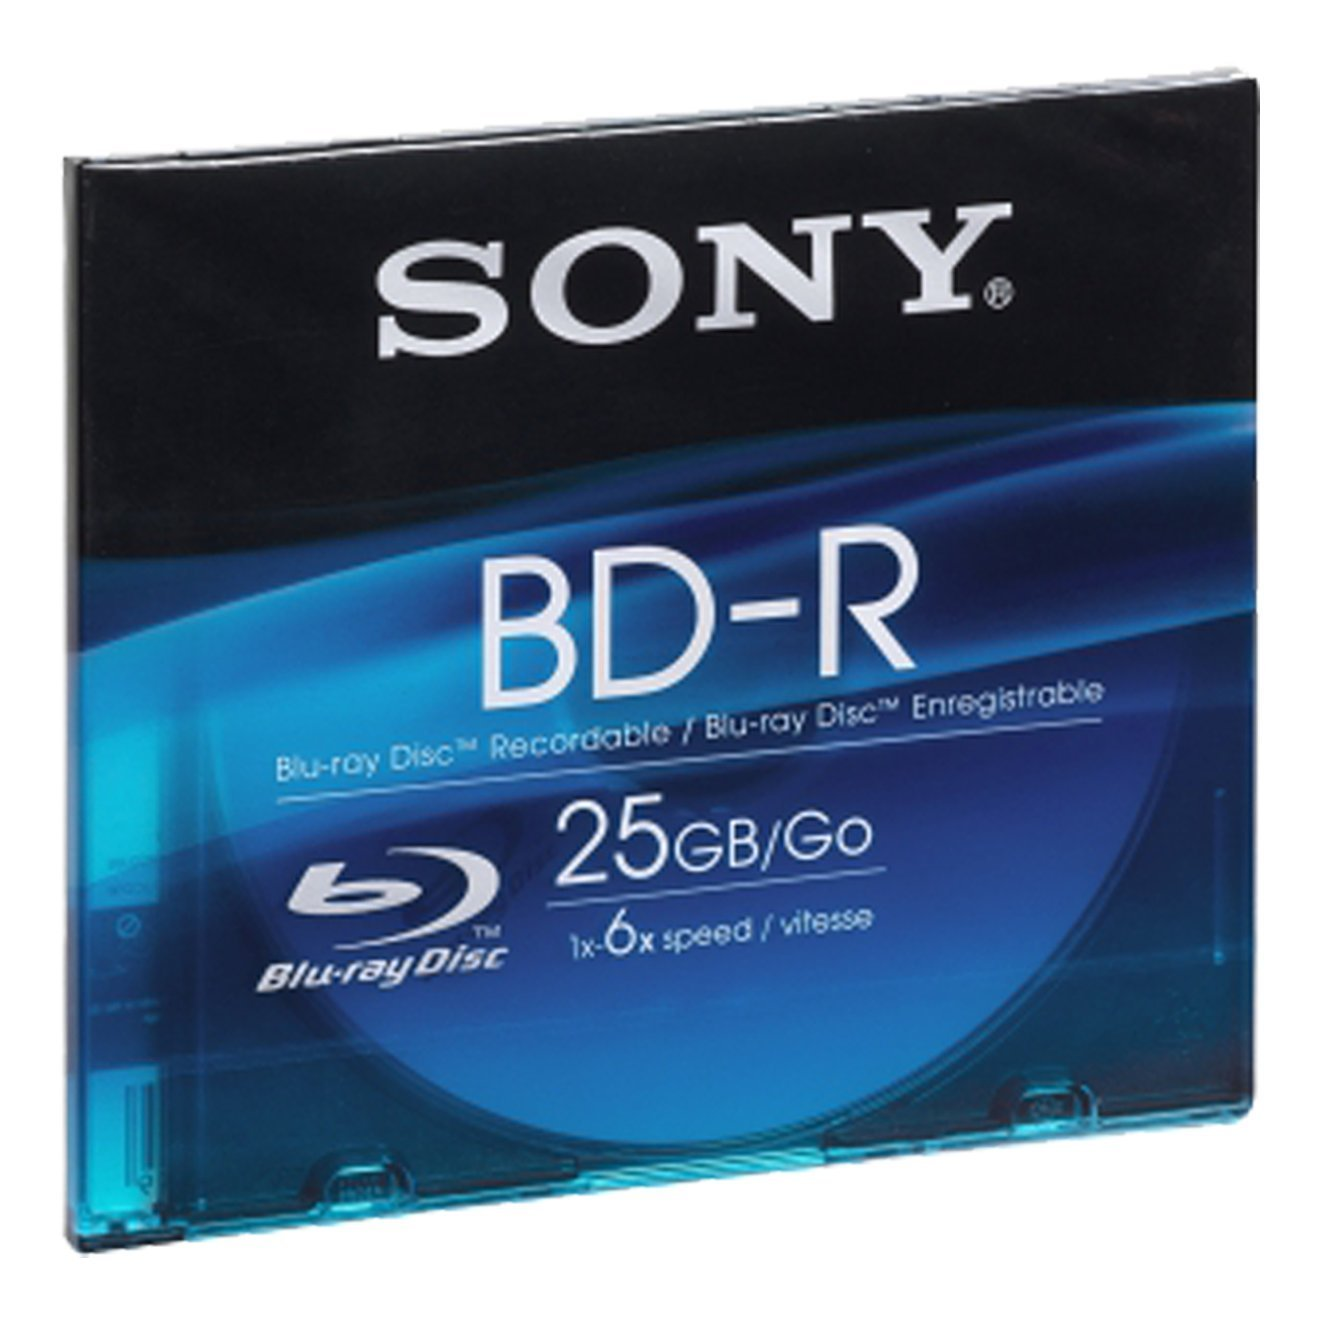 Sony Blu-ray Disc Recorable 25gb